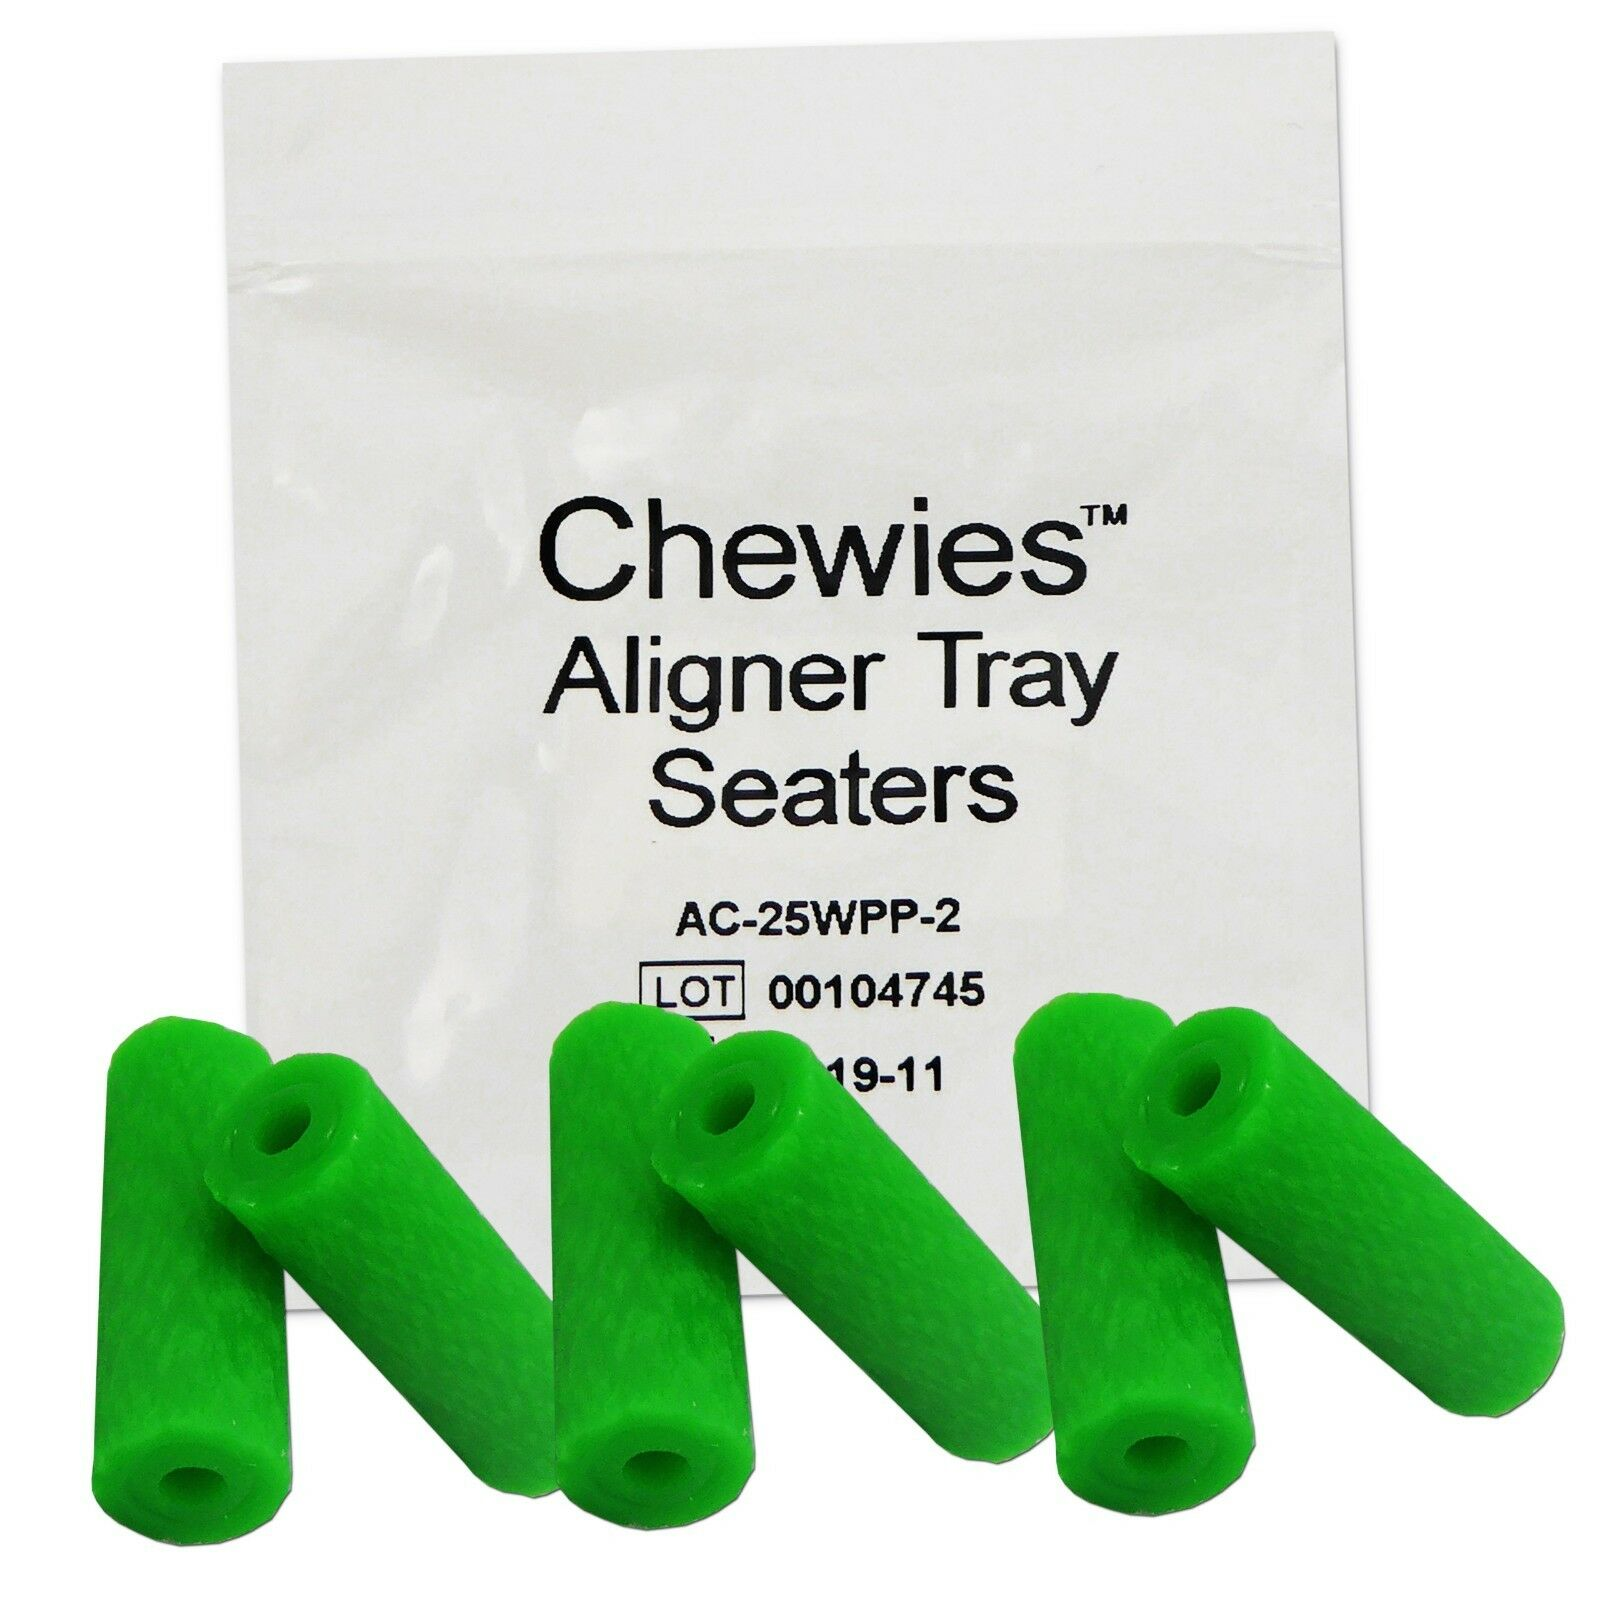 6 Green / Mint Chewies